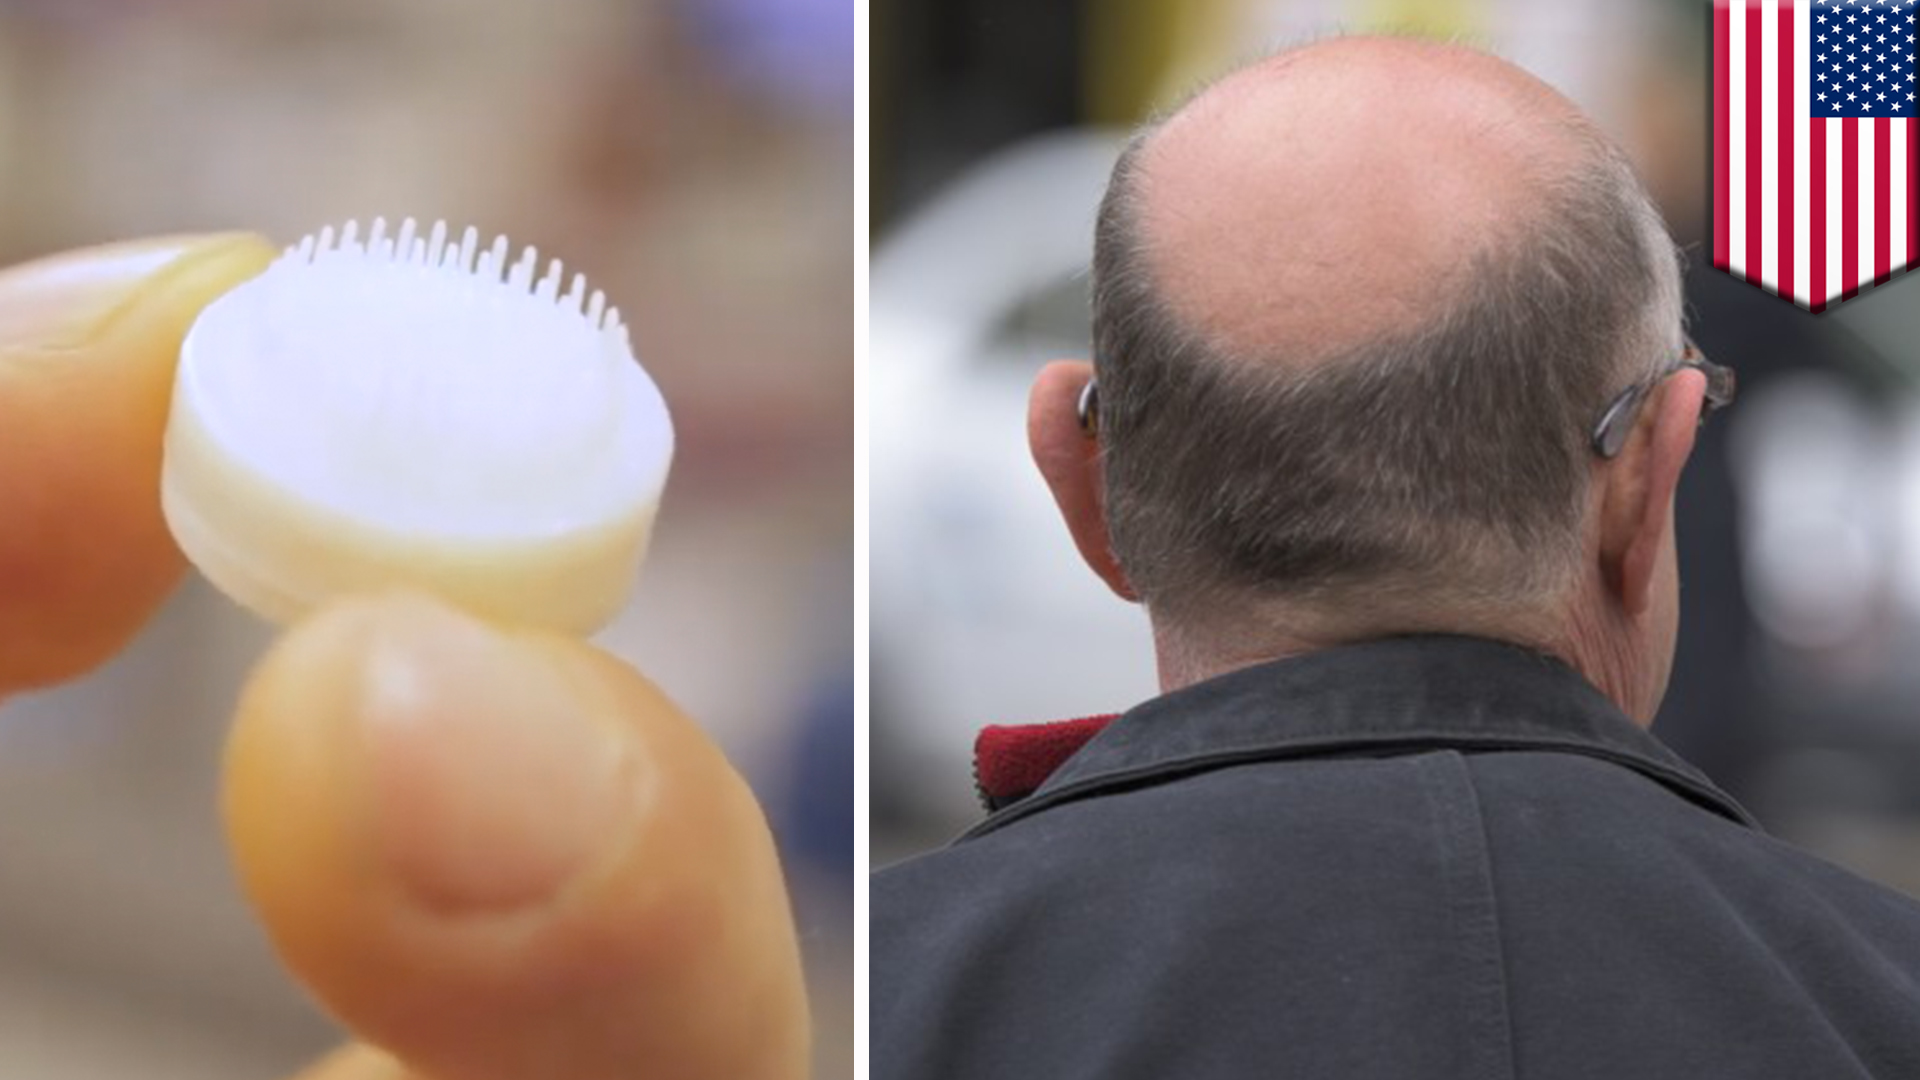 Scientists use  3D printing to make hair farms for human hair